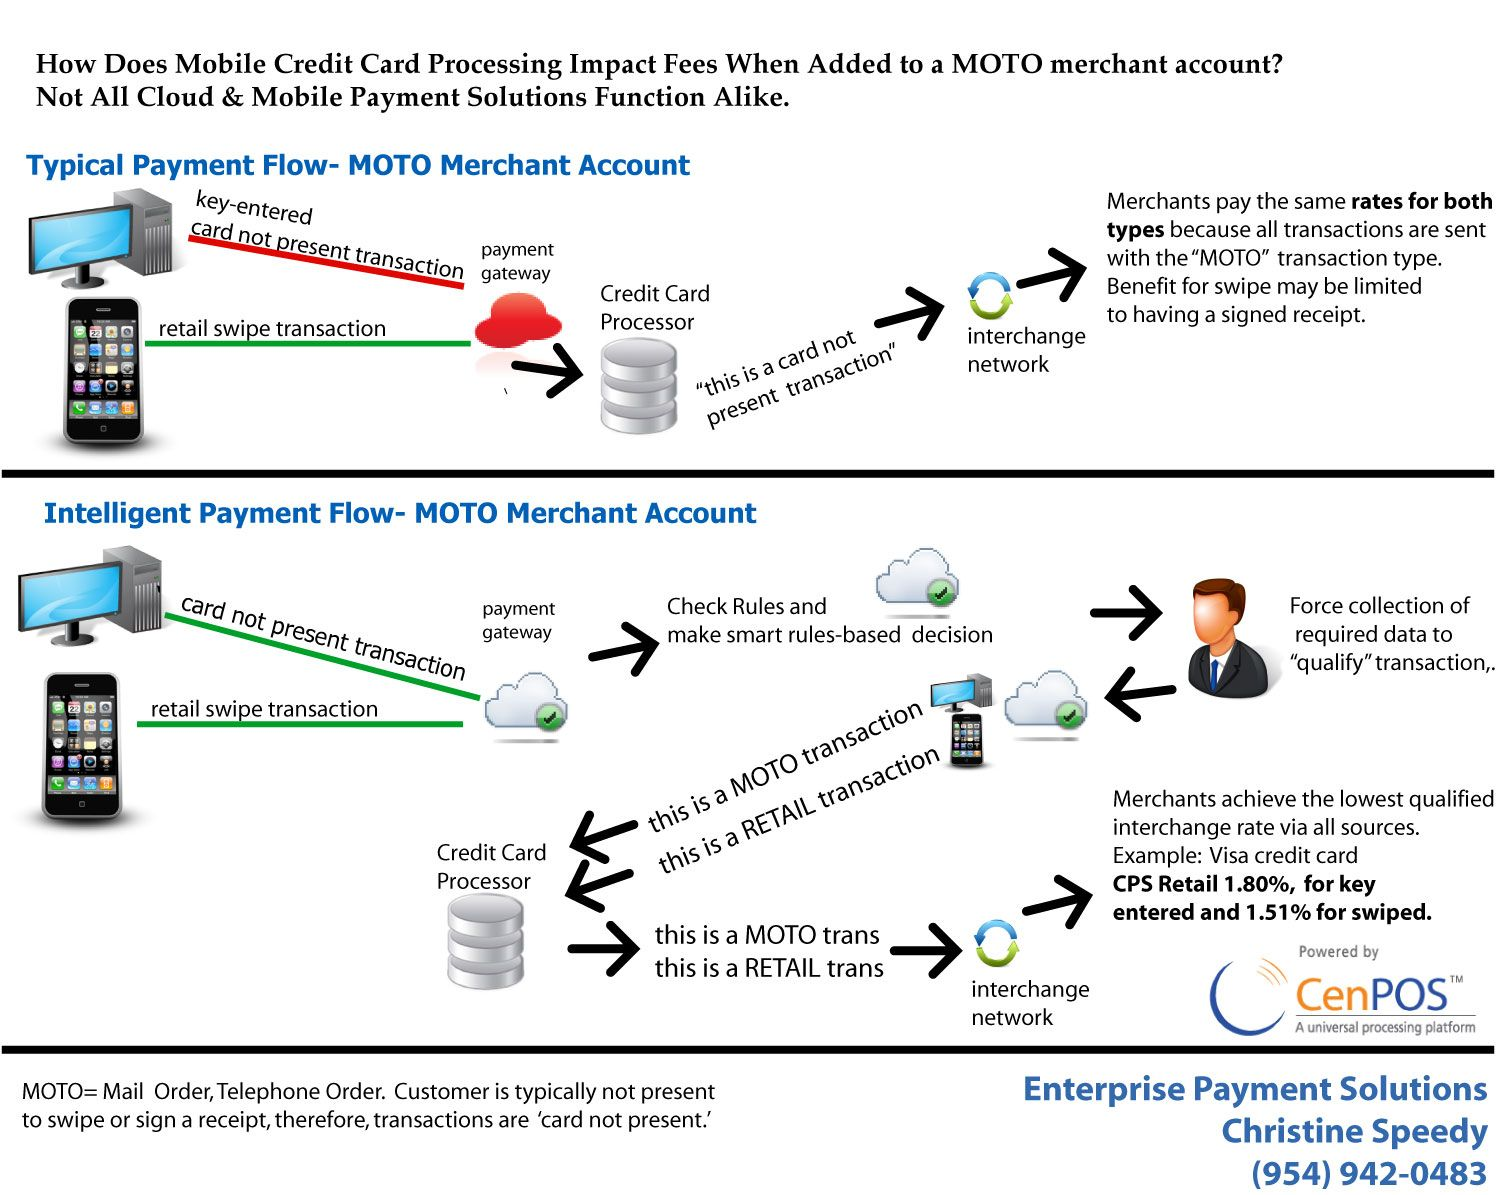 Mobile Payments. How does adding mobile impact credit card processing fees for a MOTO merchant account?